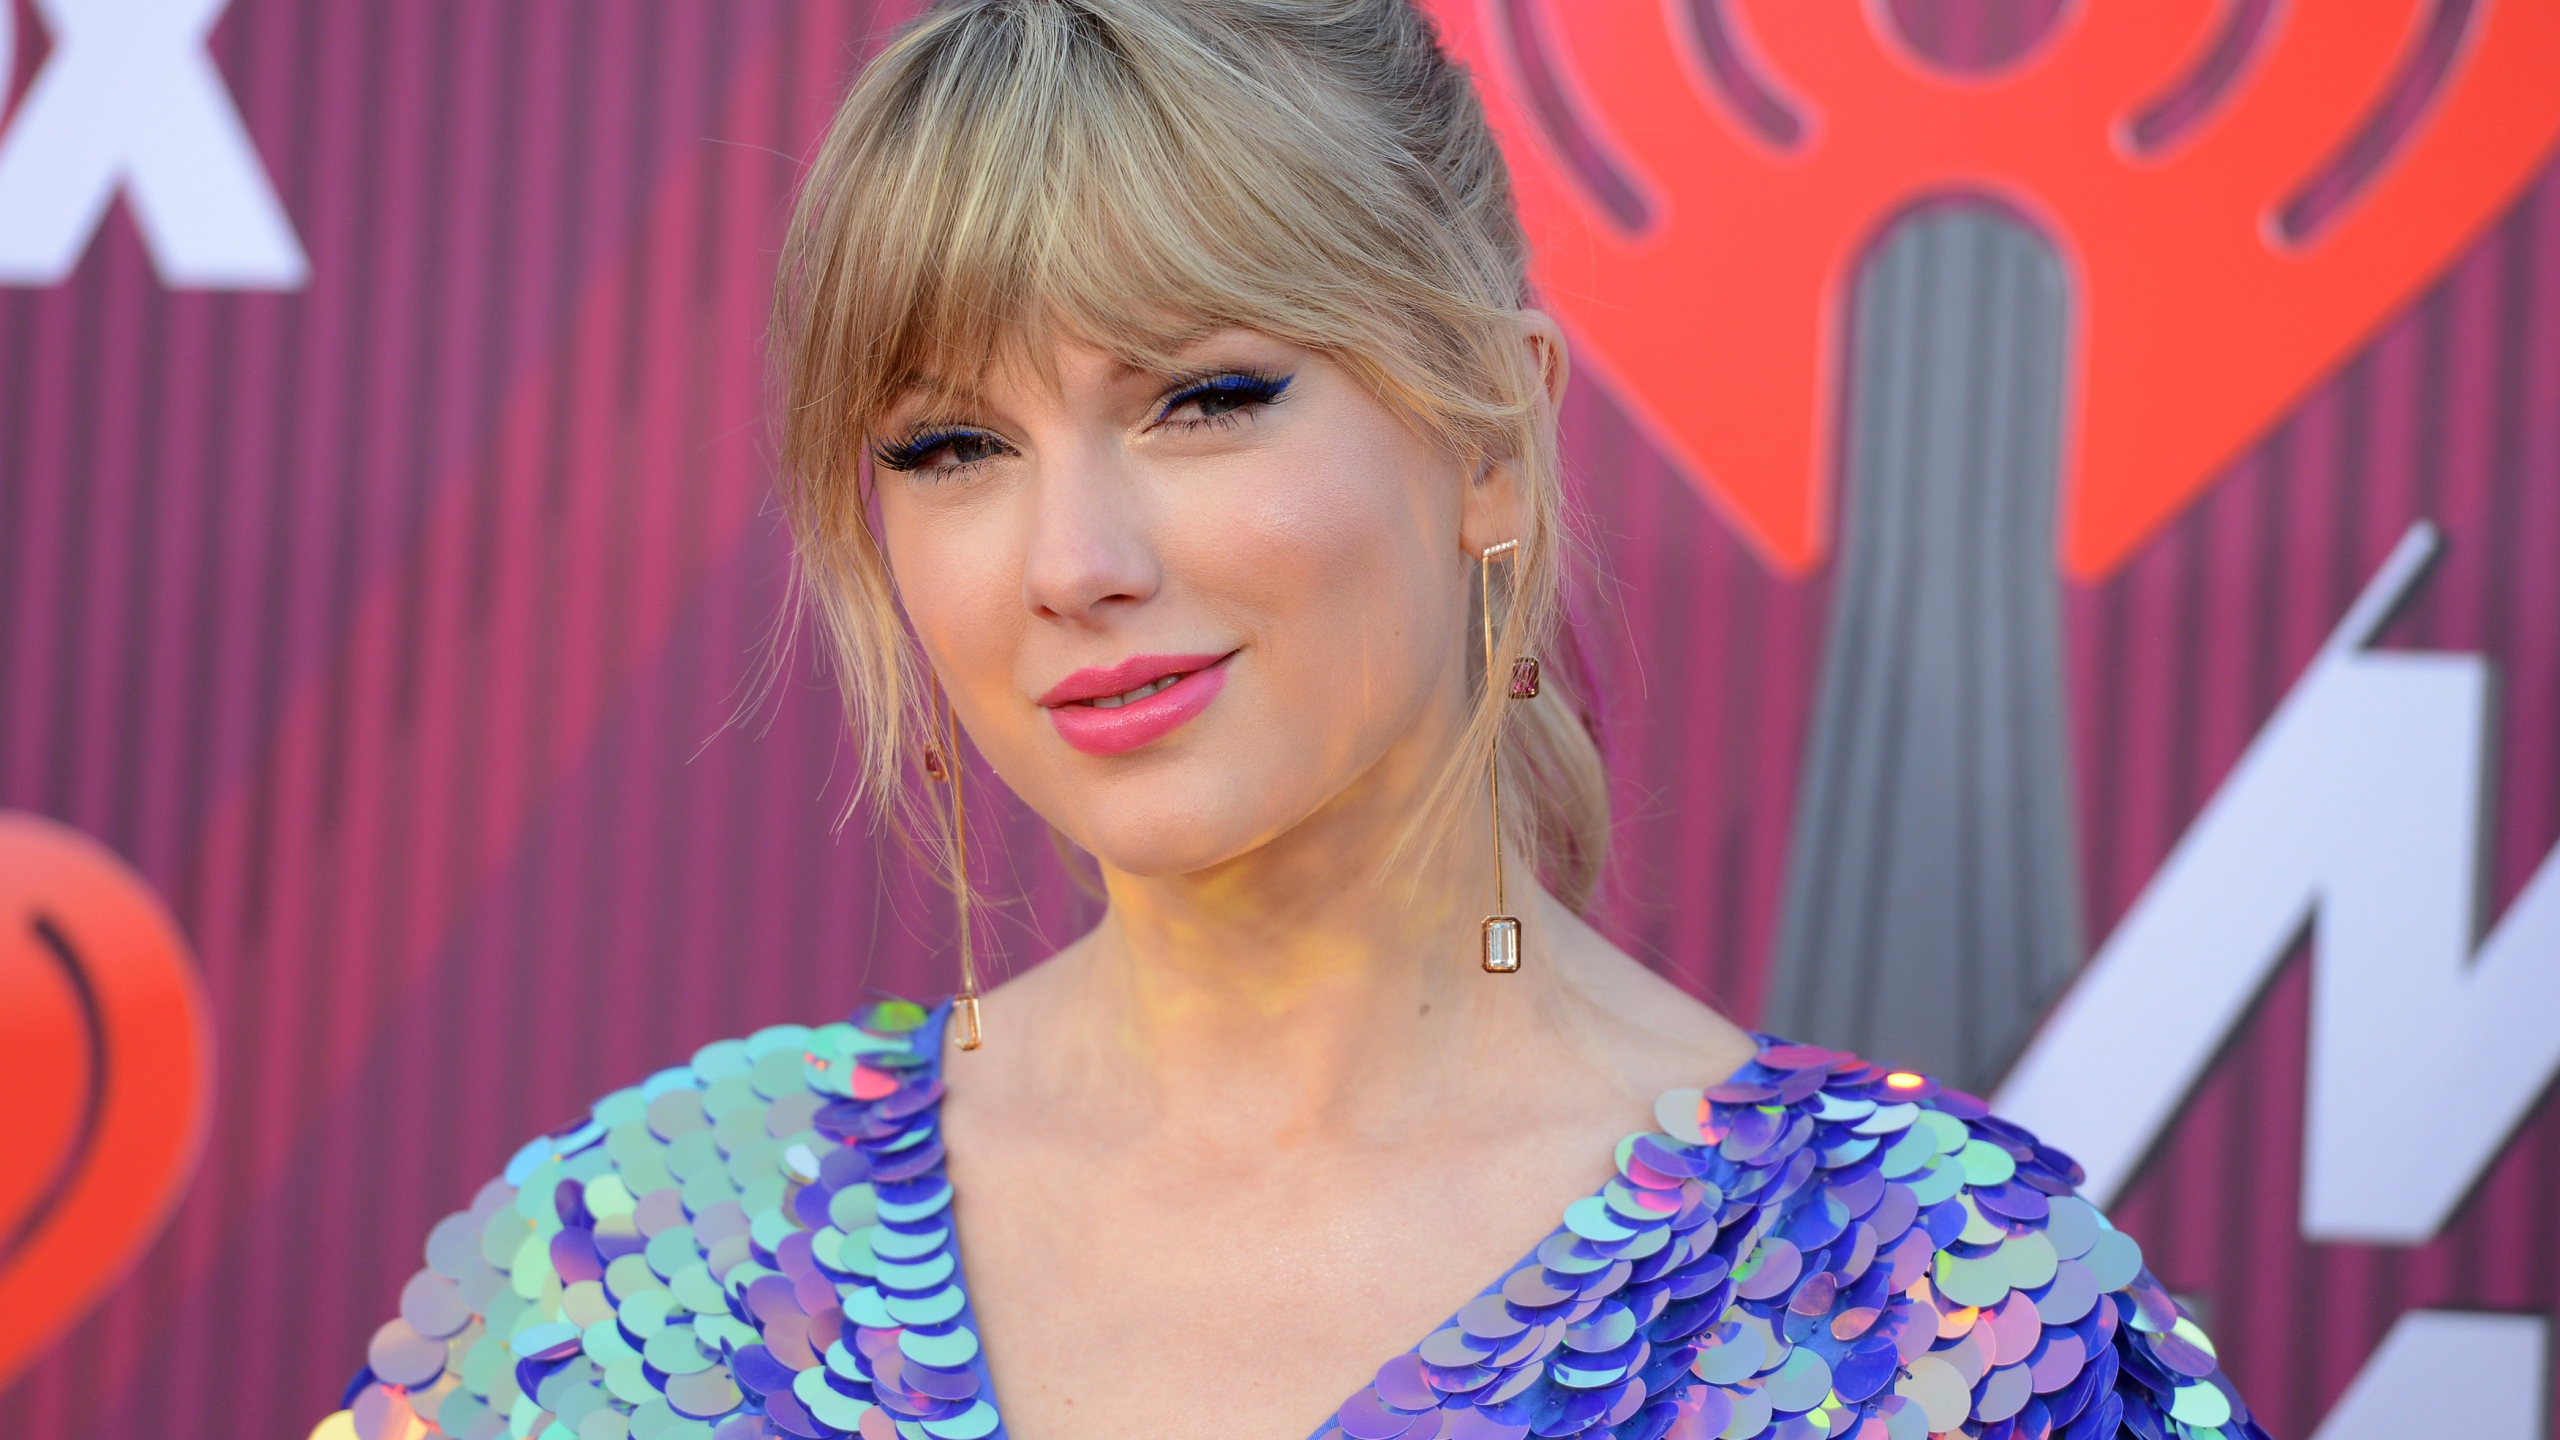 Taylor_Swift_LGBT_Donation_18084-159532.jpg08540425